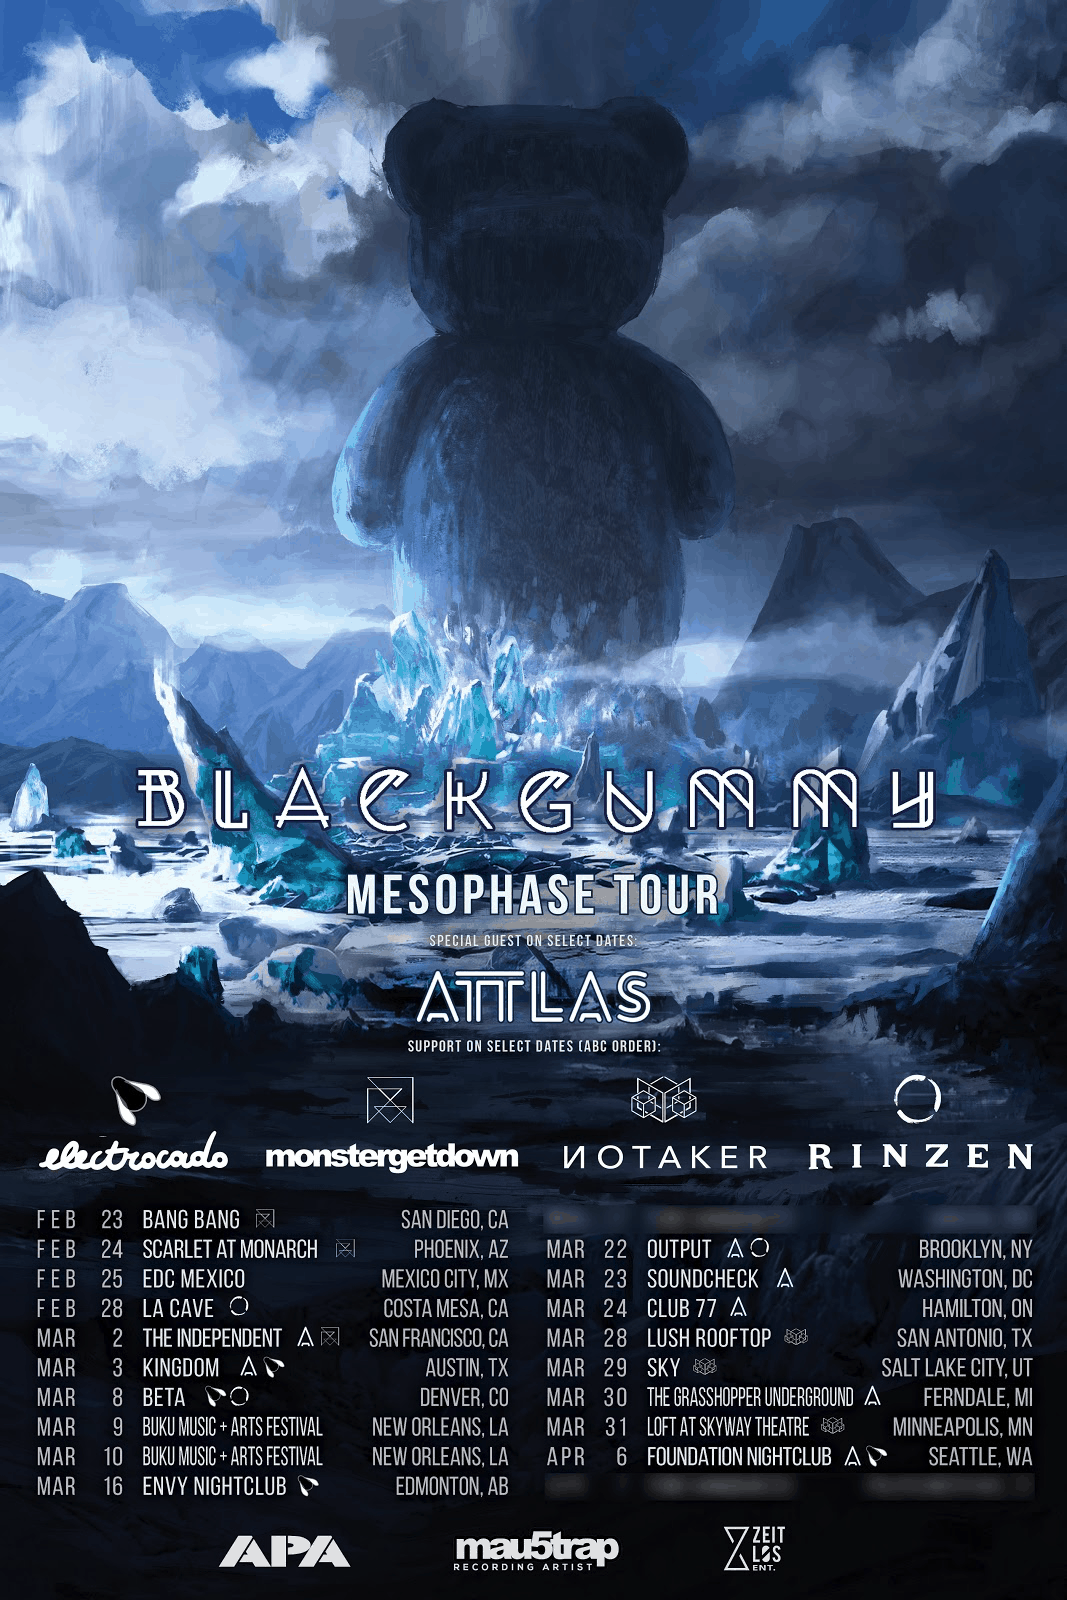 BlackGummy reveals Mesophase Tour with support from mau5trap artists